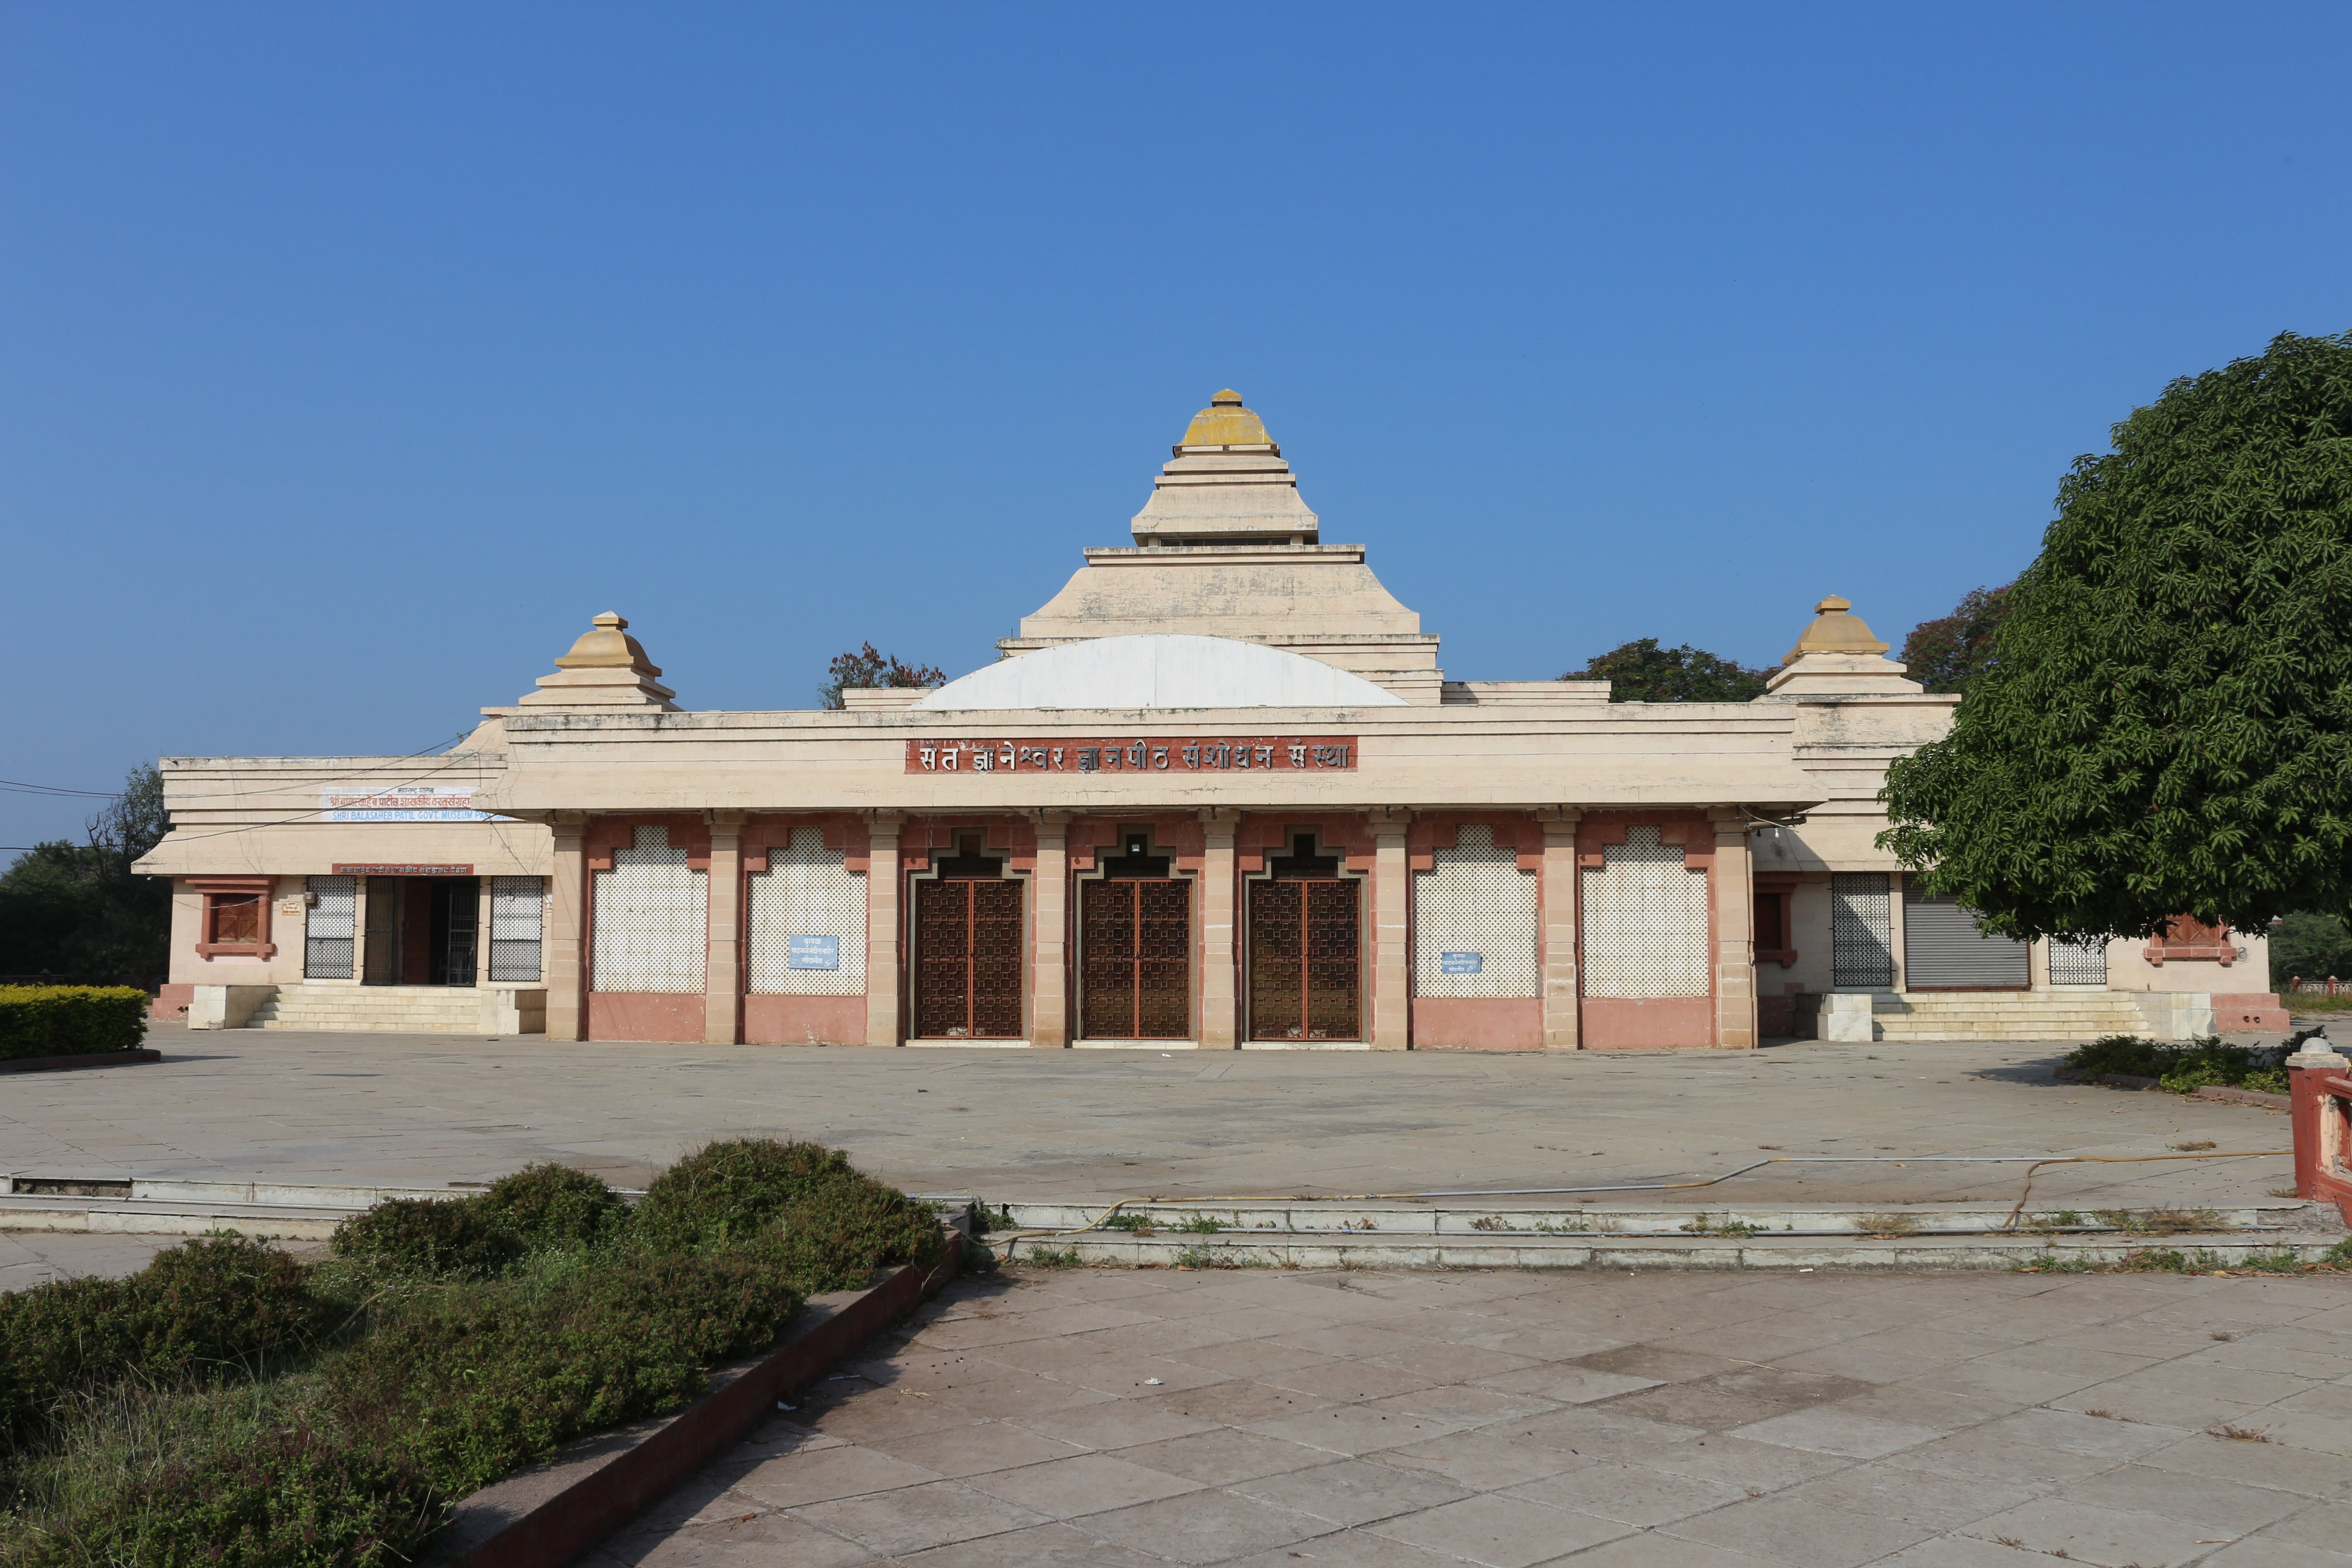 Paithan museum